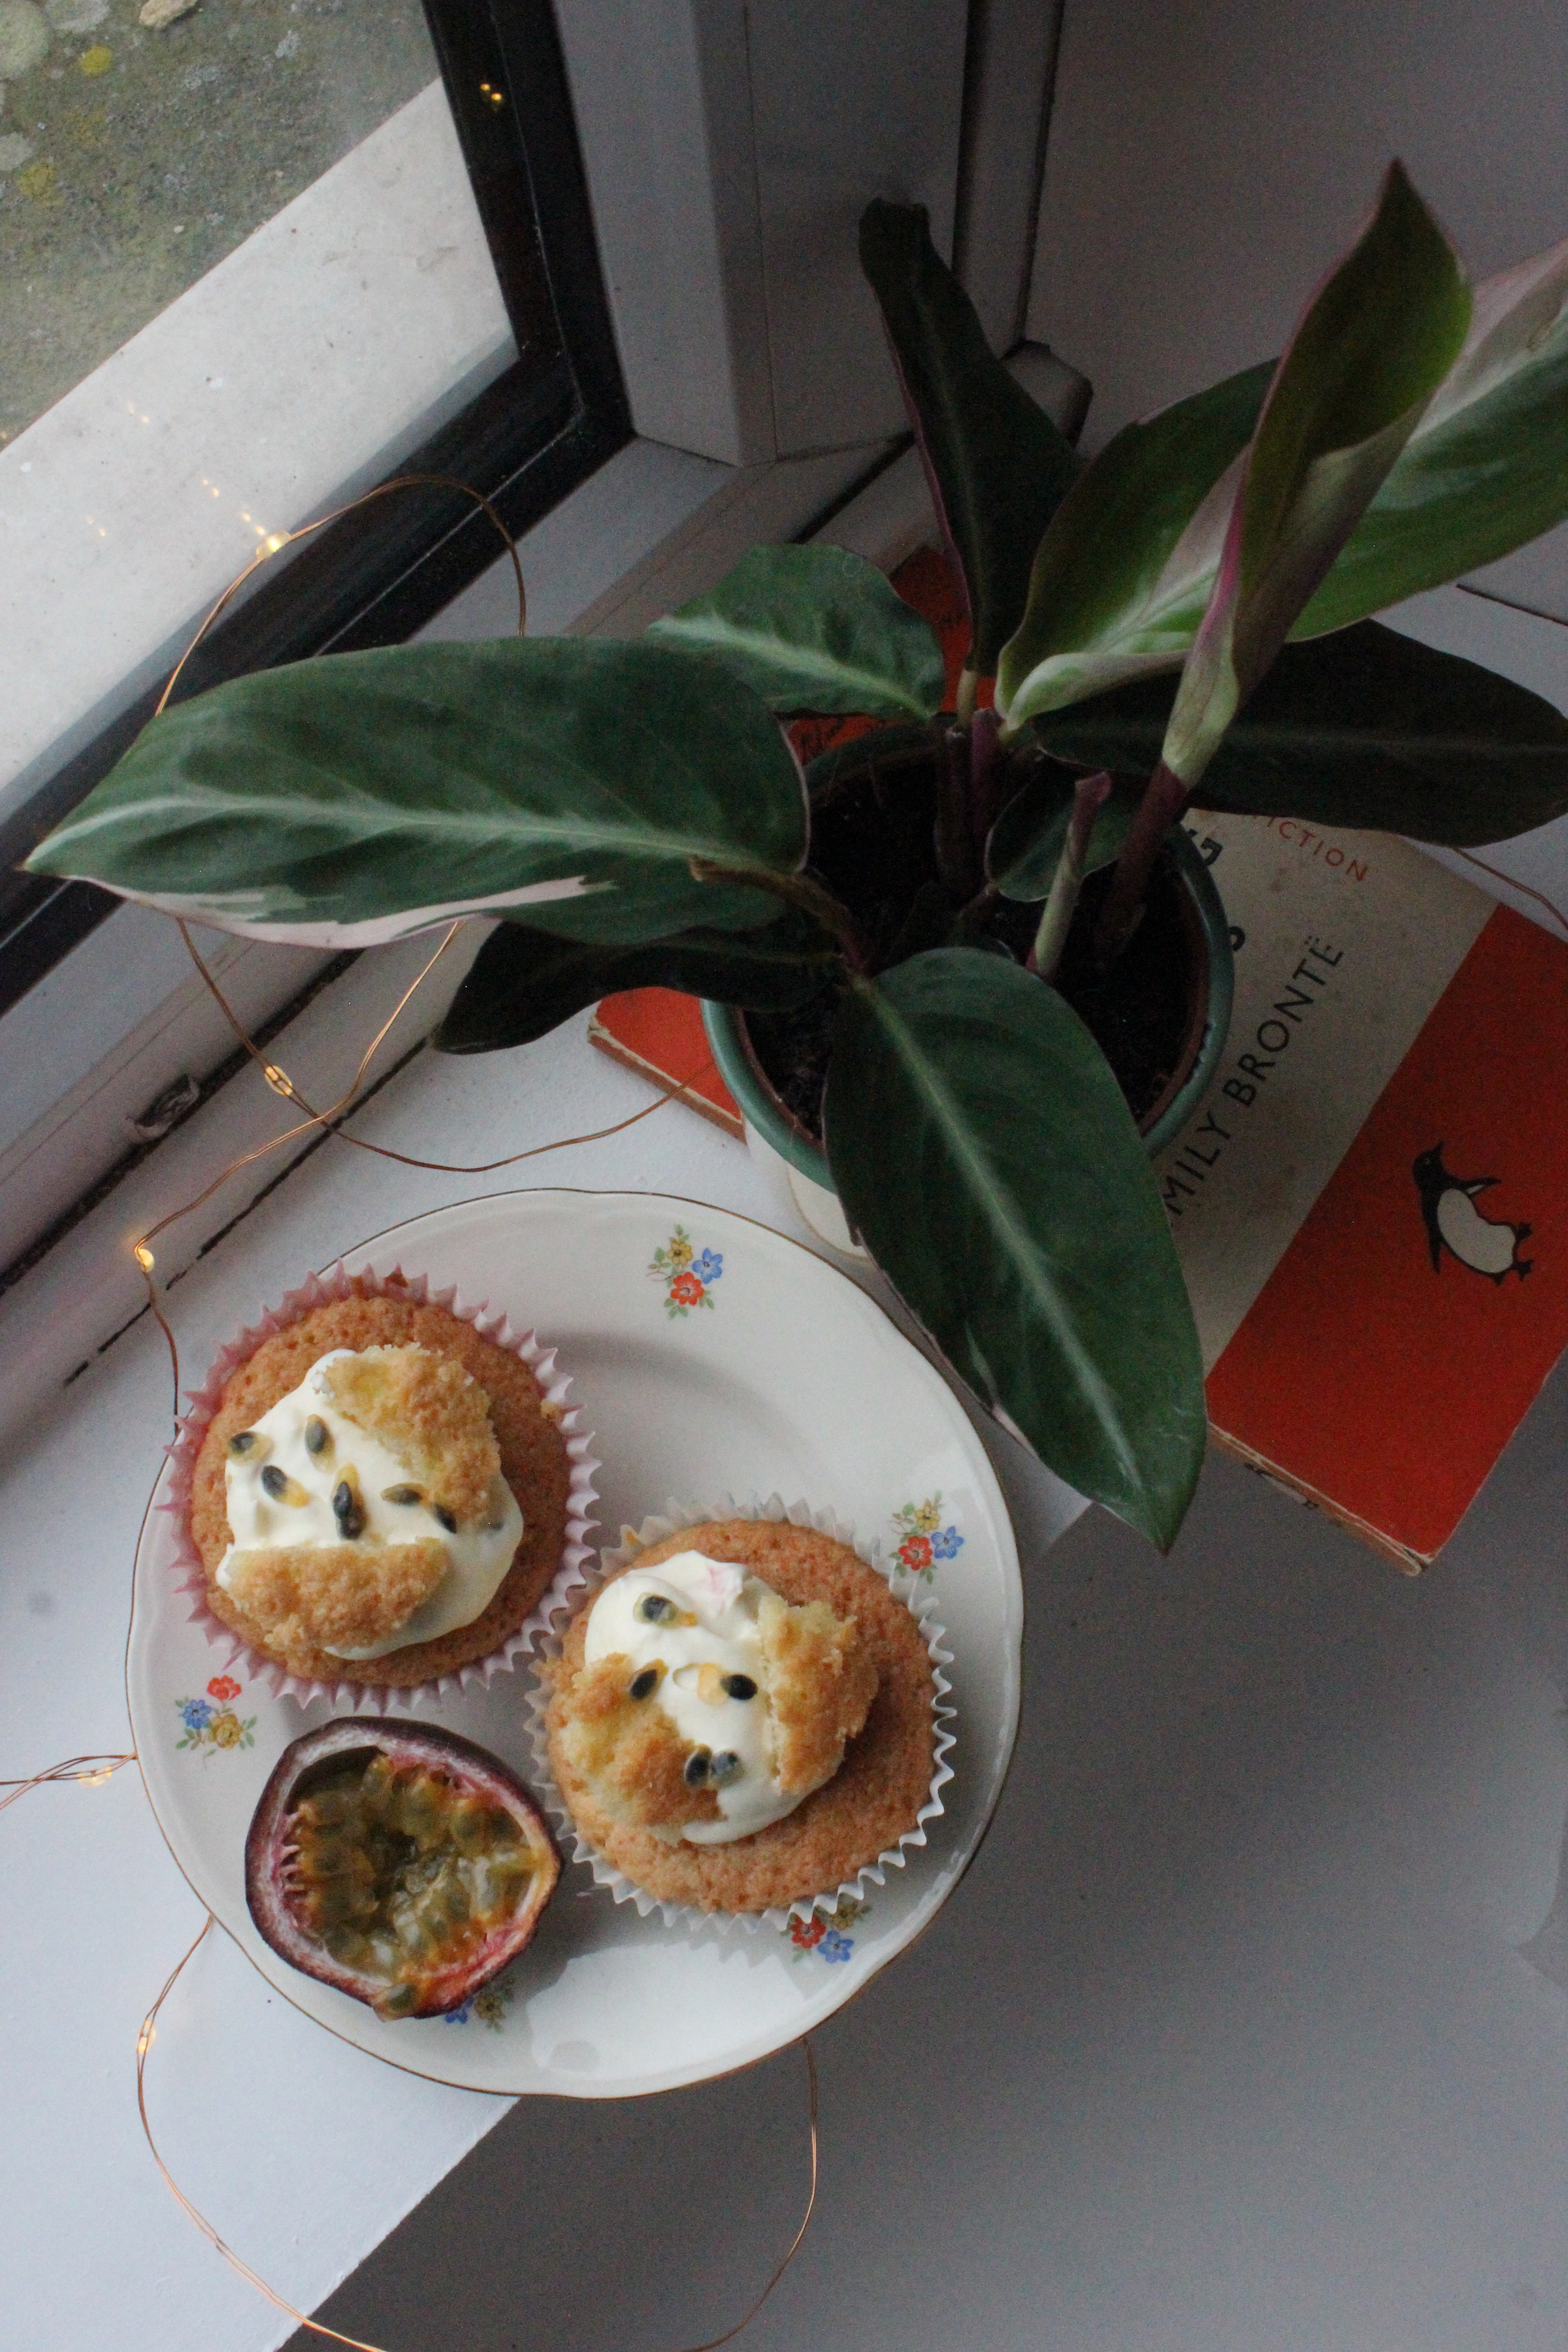 Passionfruit butterfly cakes